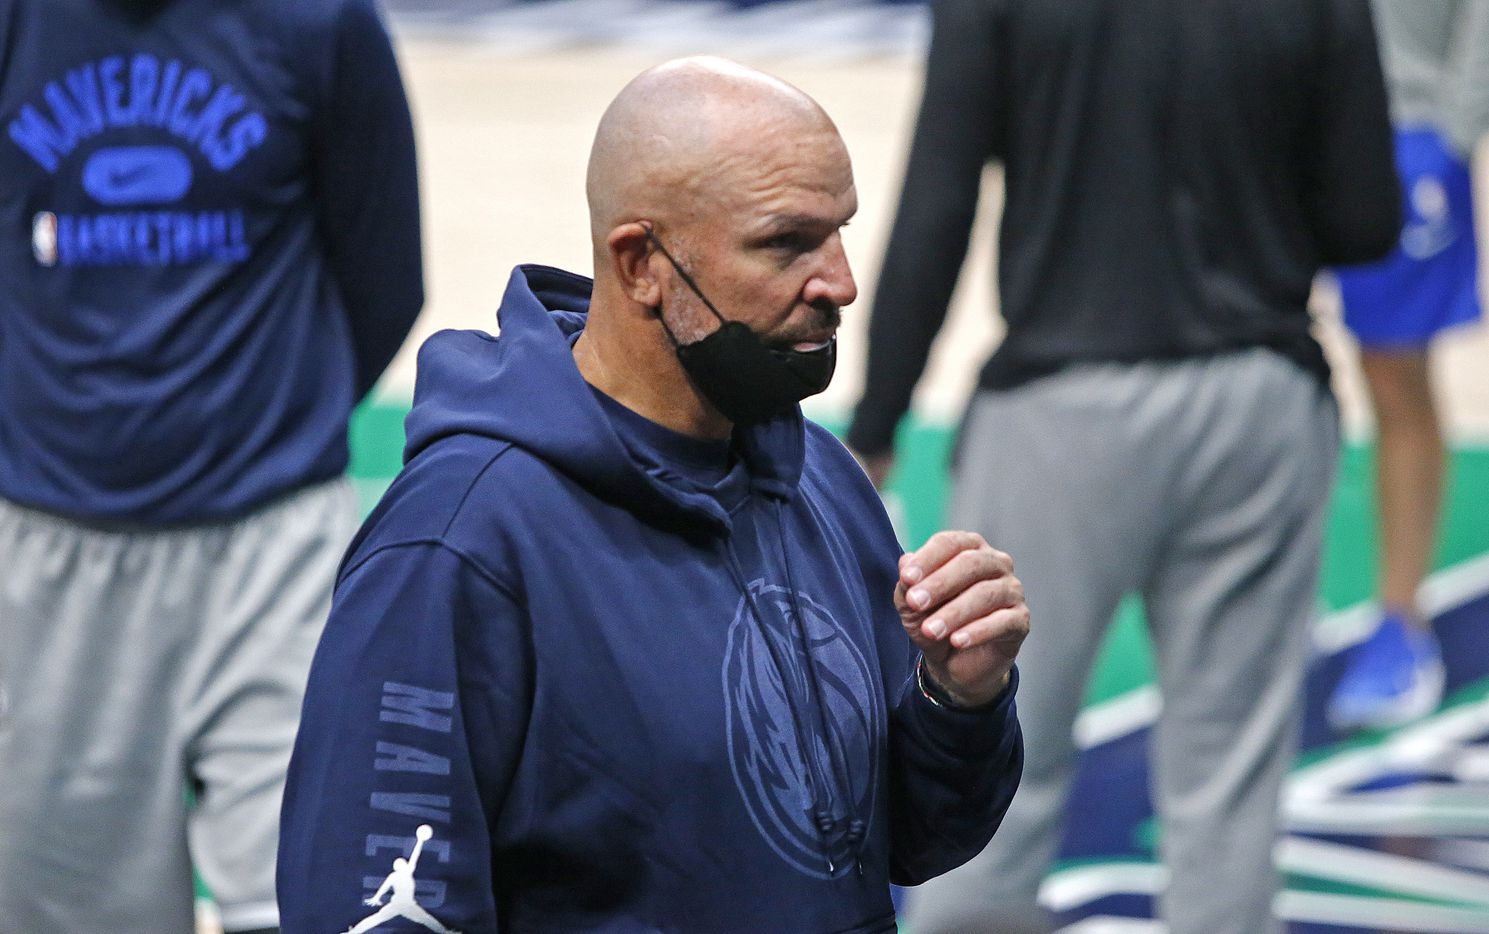 Dallas Mavericks head coach Jason Kidd heads for the locker room after the scrimmage as the Dallas Mavericks held their Mavs Fam Jam, a scrimmage free to the public at the American Airlines Center in Dallas on Sunday, October 3, 2021. (Stewart F. House/Special Contributor)